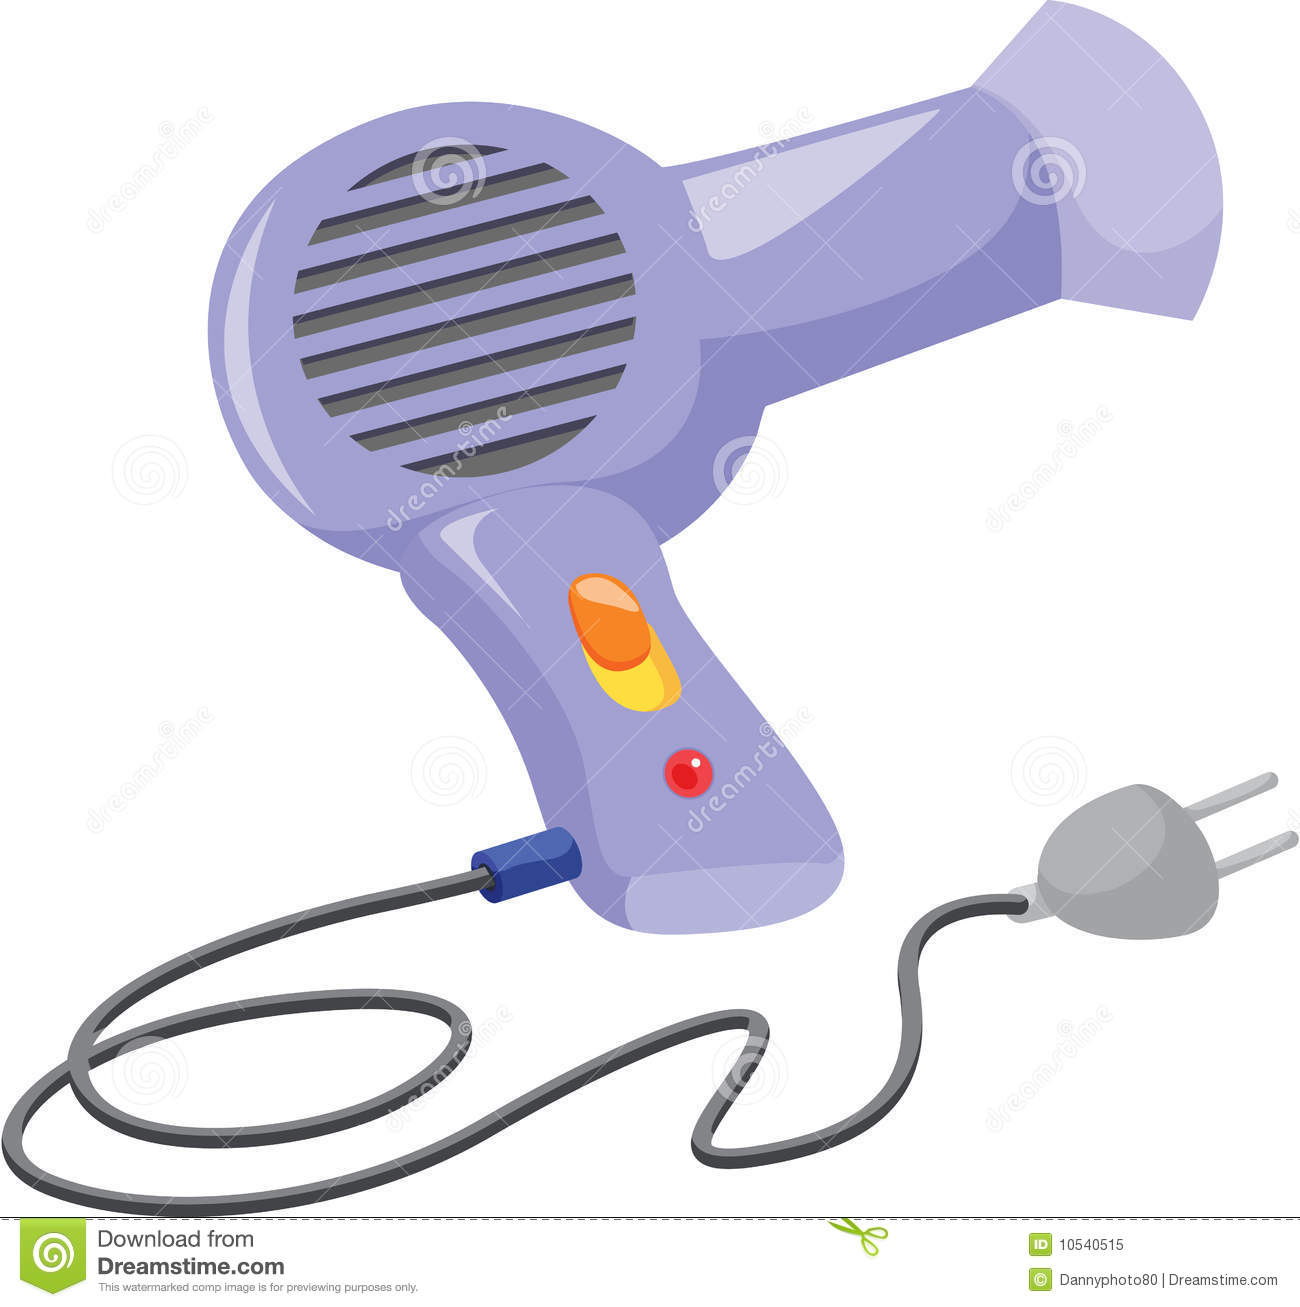 Animated Hair Dryer ~ Hair dryer clipart suggest